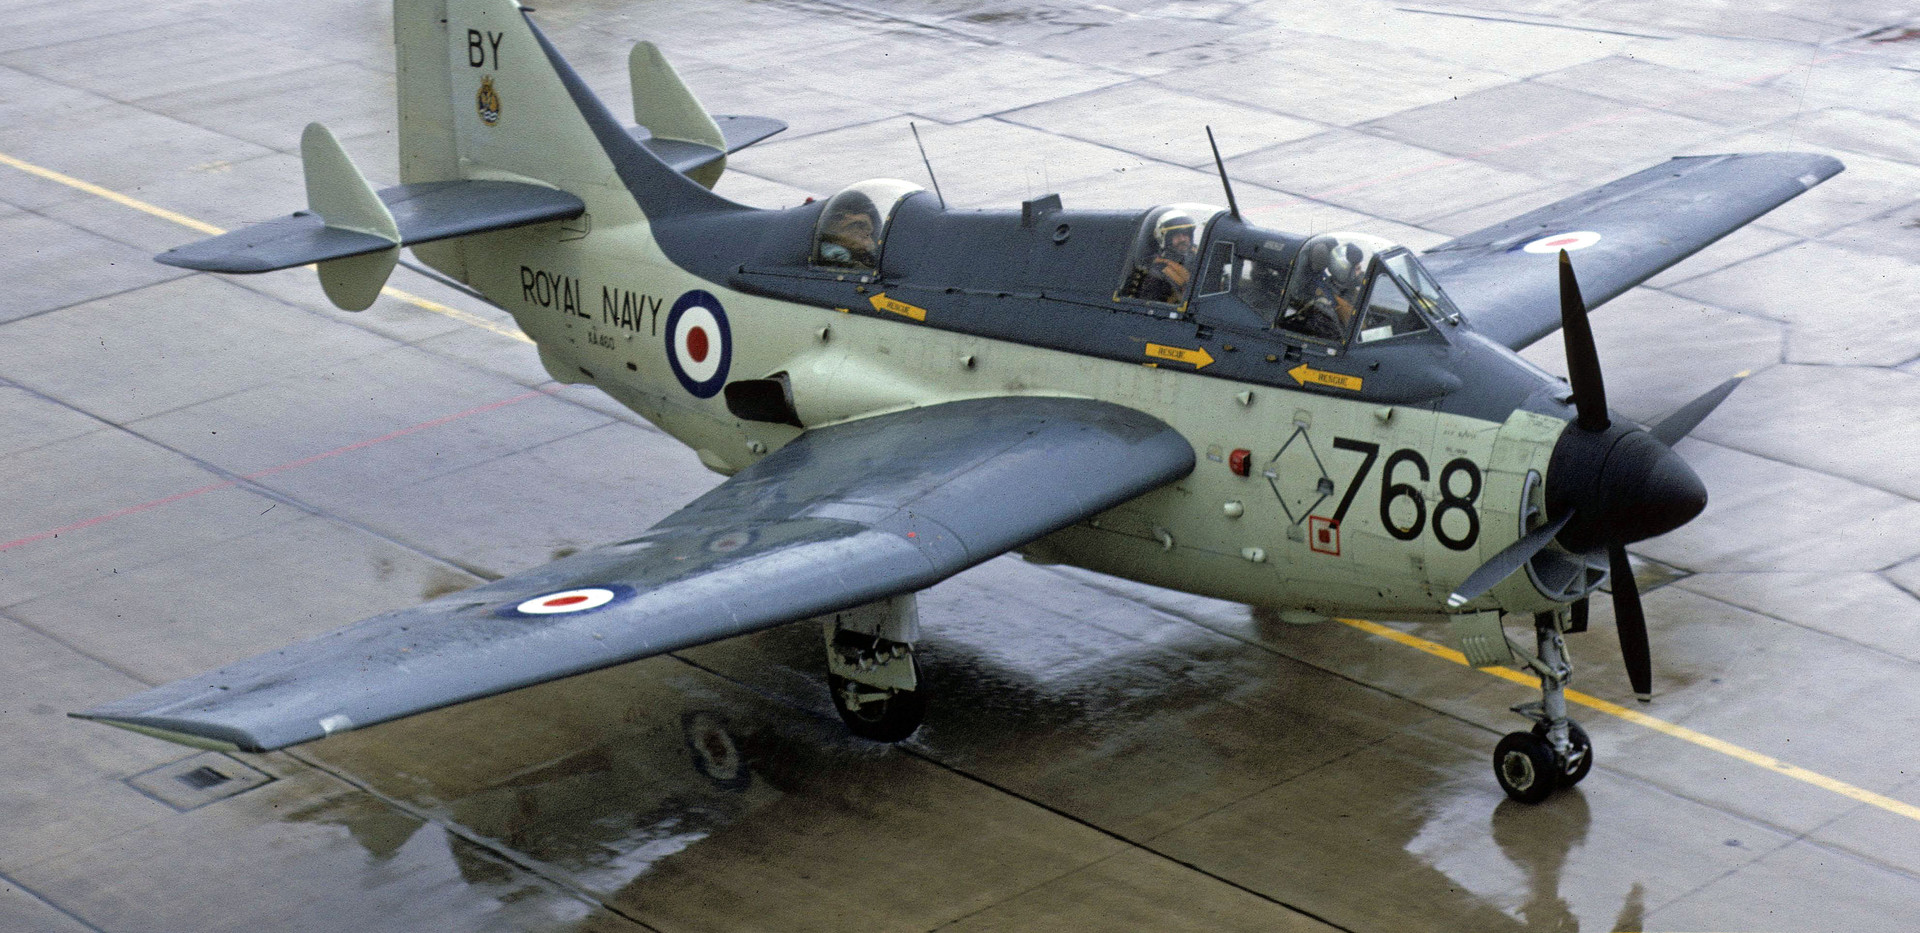 Fairey Gannet XA460 with its 1967 code of 768/BY when it was assigned to 849HQ flight at Brawdy.